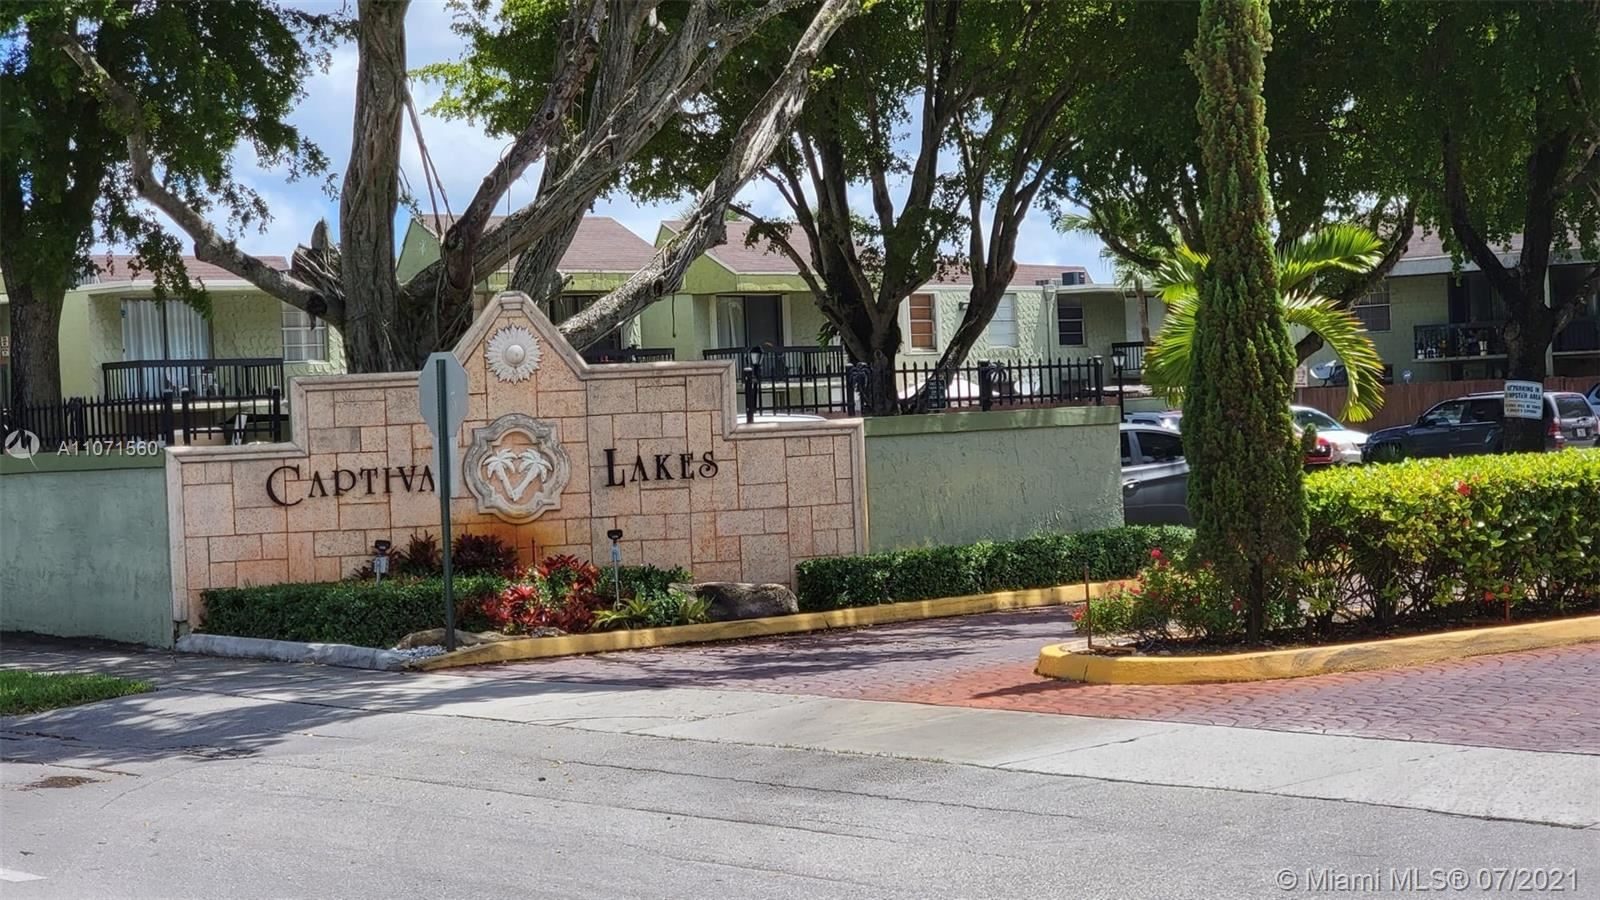 8303 SW 142nd Ave #D210, Miami, FL 33183 - #: A11071560